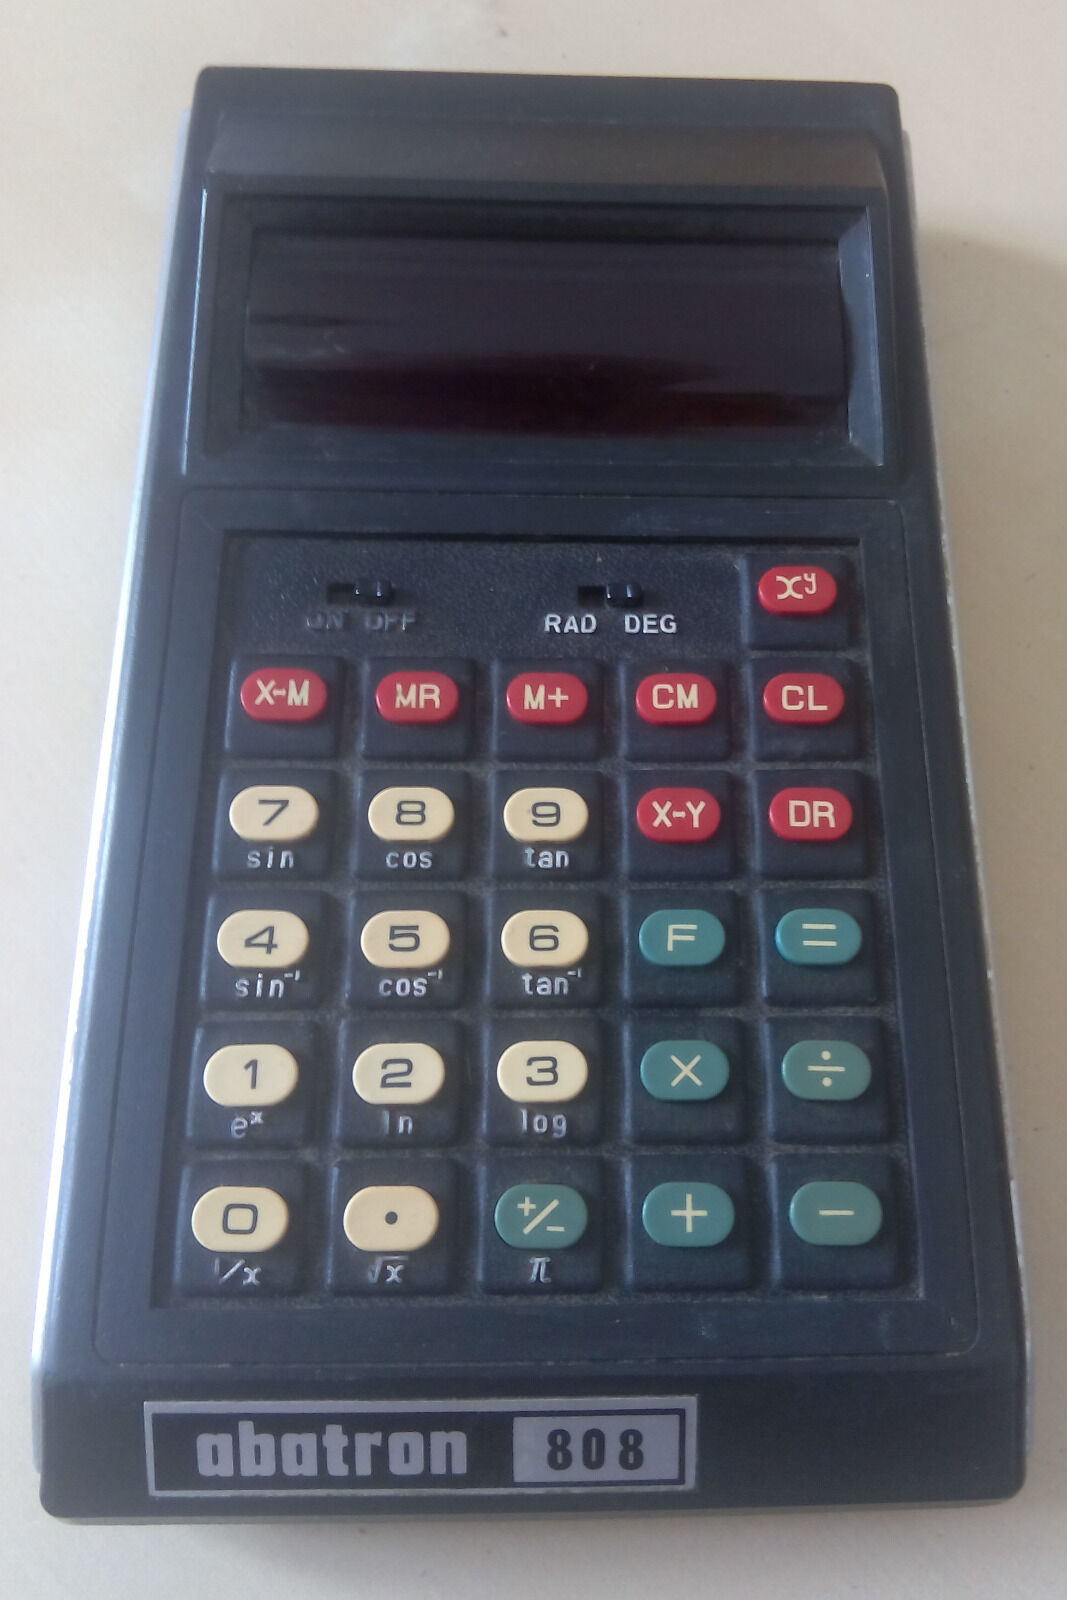 VERY RARE  VINTAGE ABATRON 808 SCIENTIFIC CALCULATOR